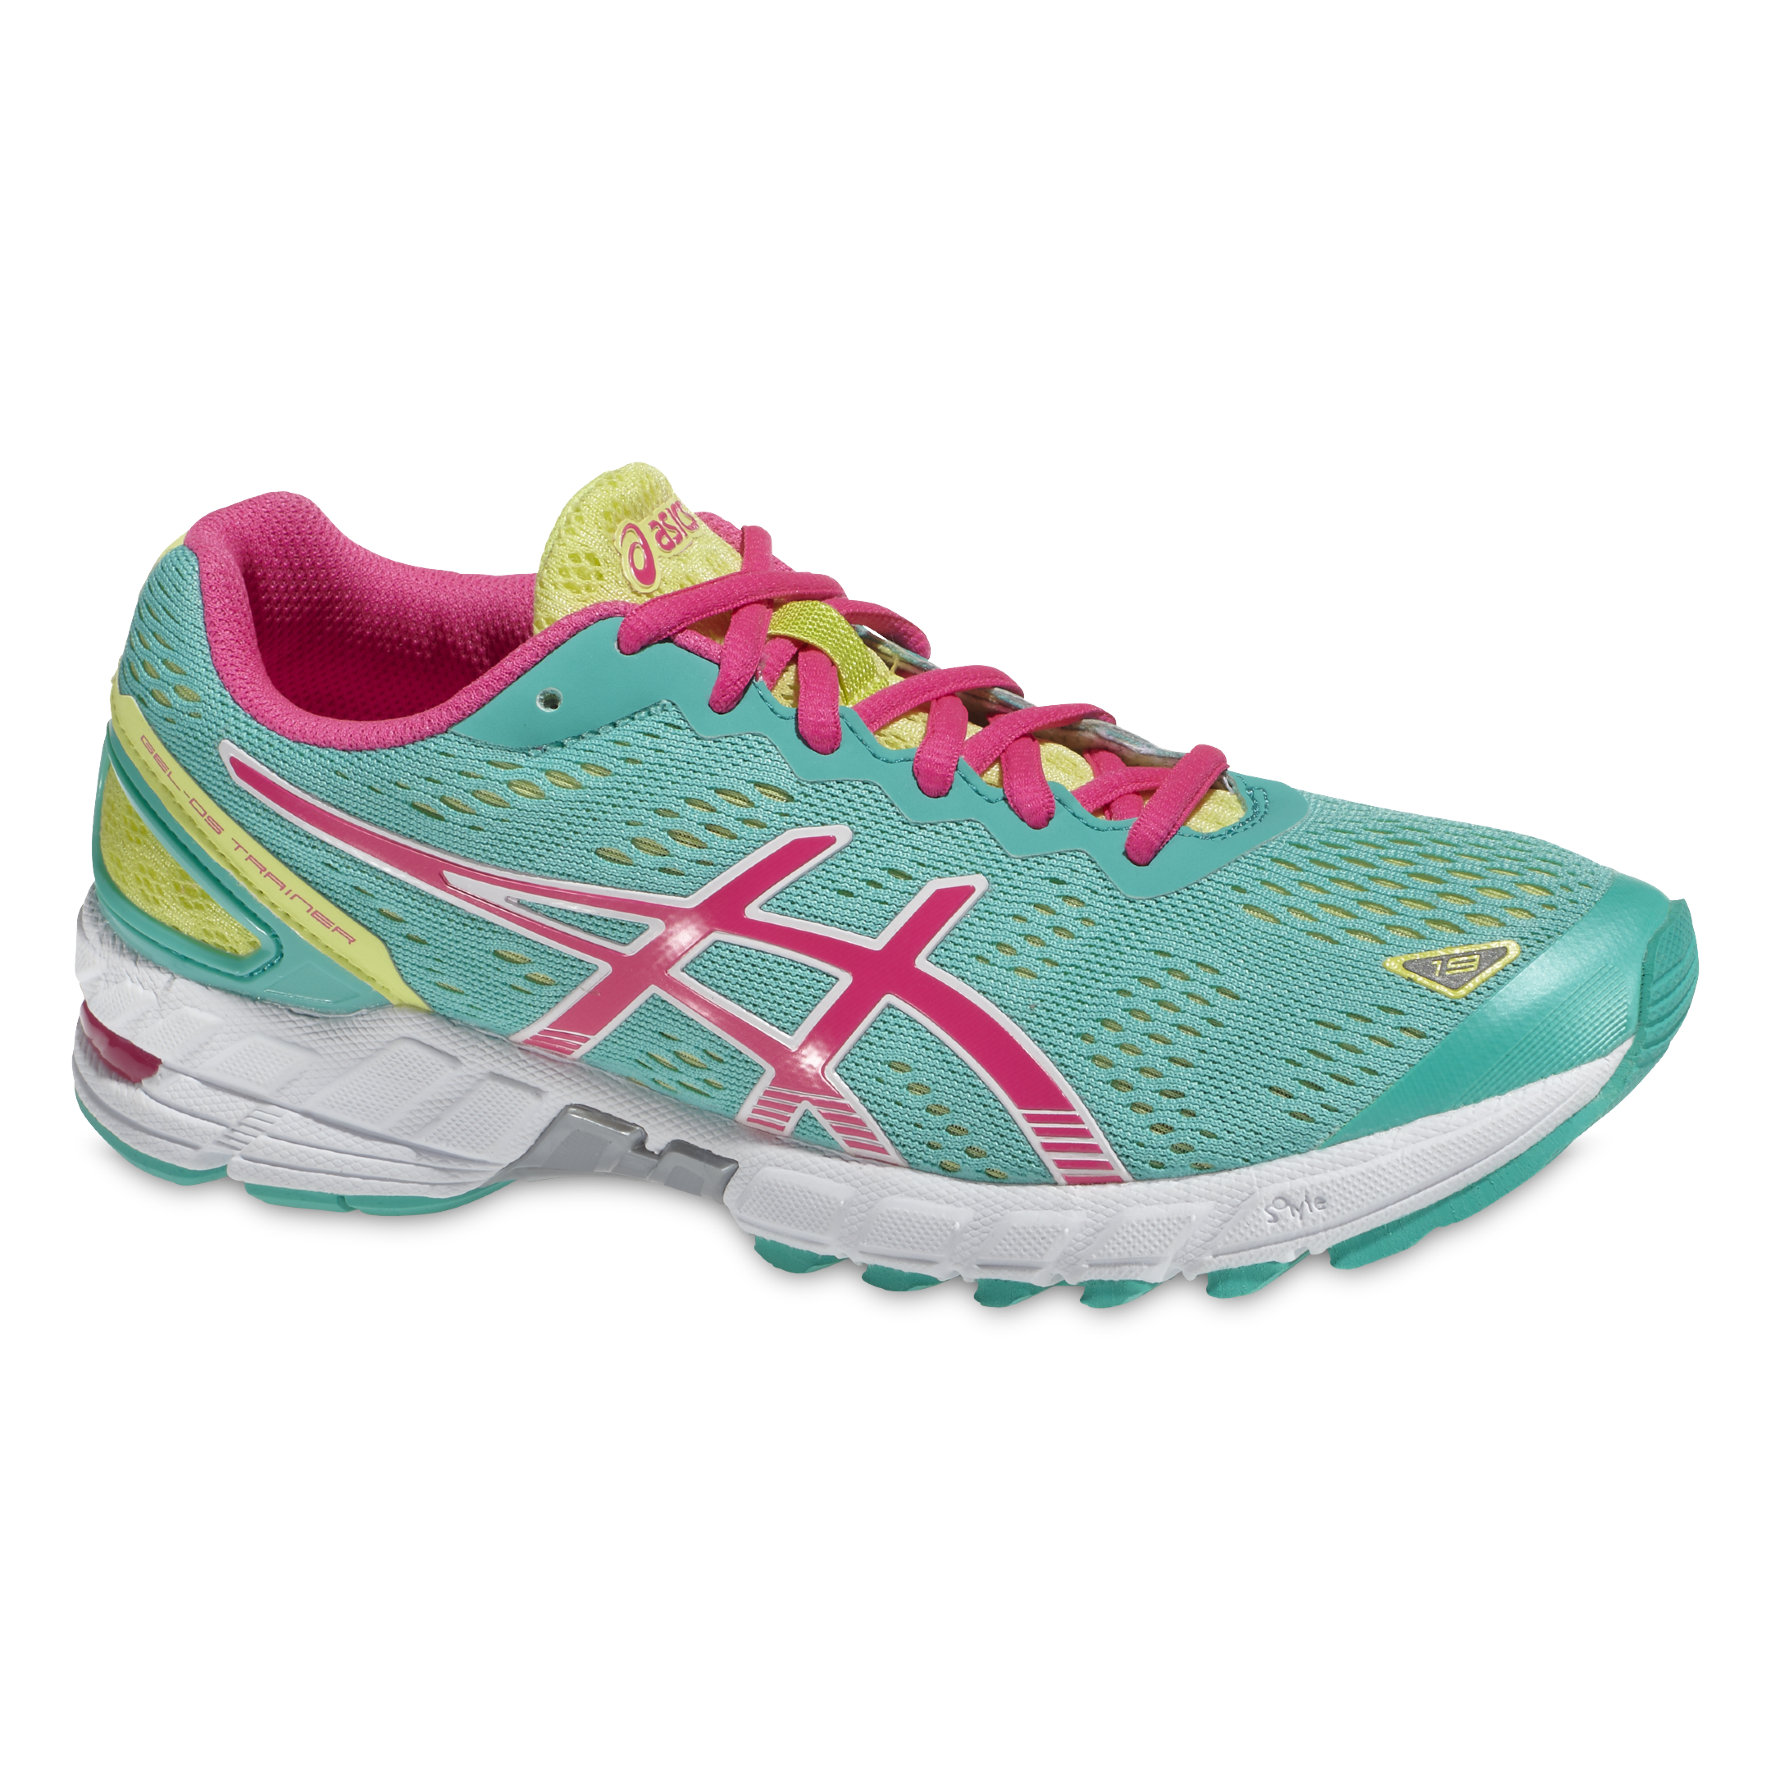 Asics Lady Gel DS-Trainer 19 in Grün, Pink